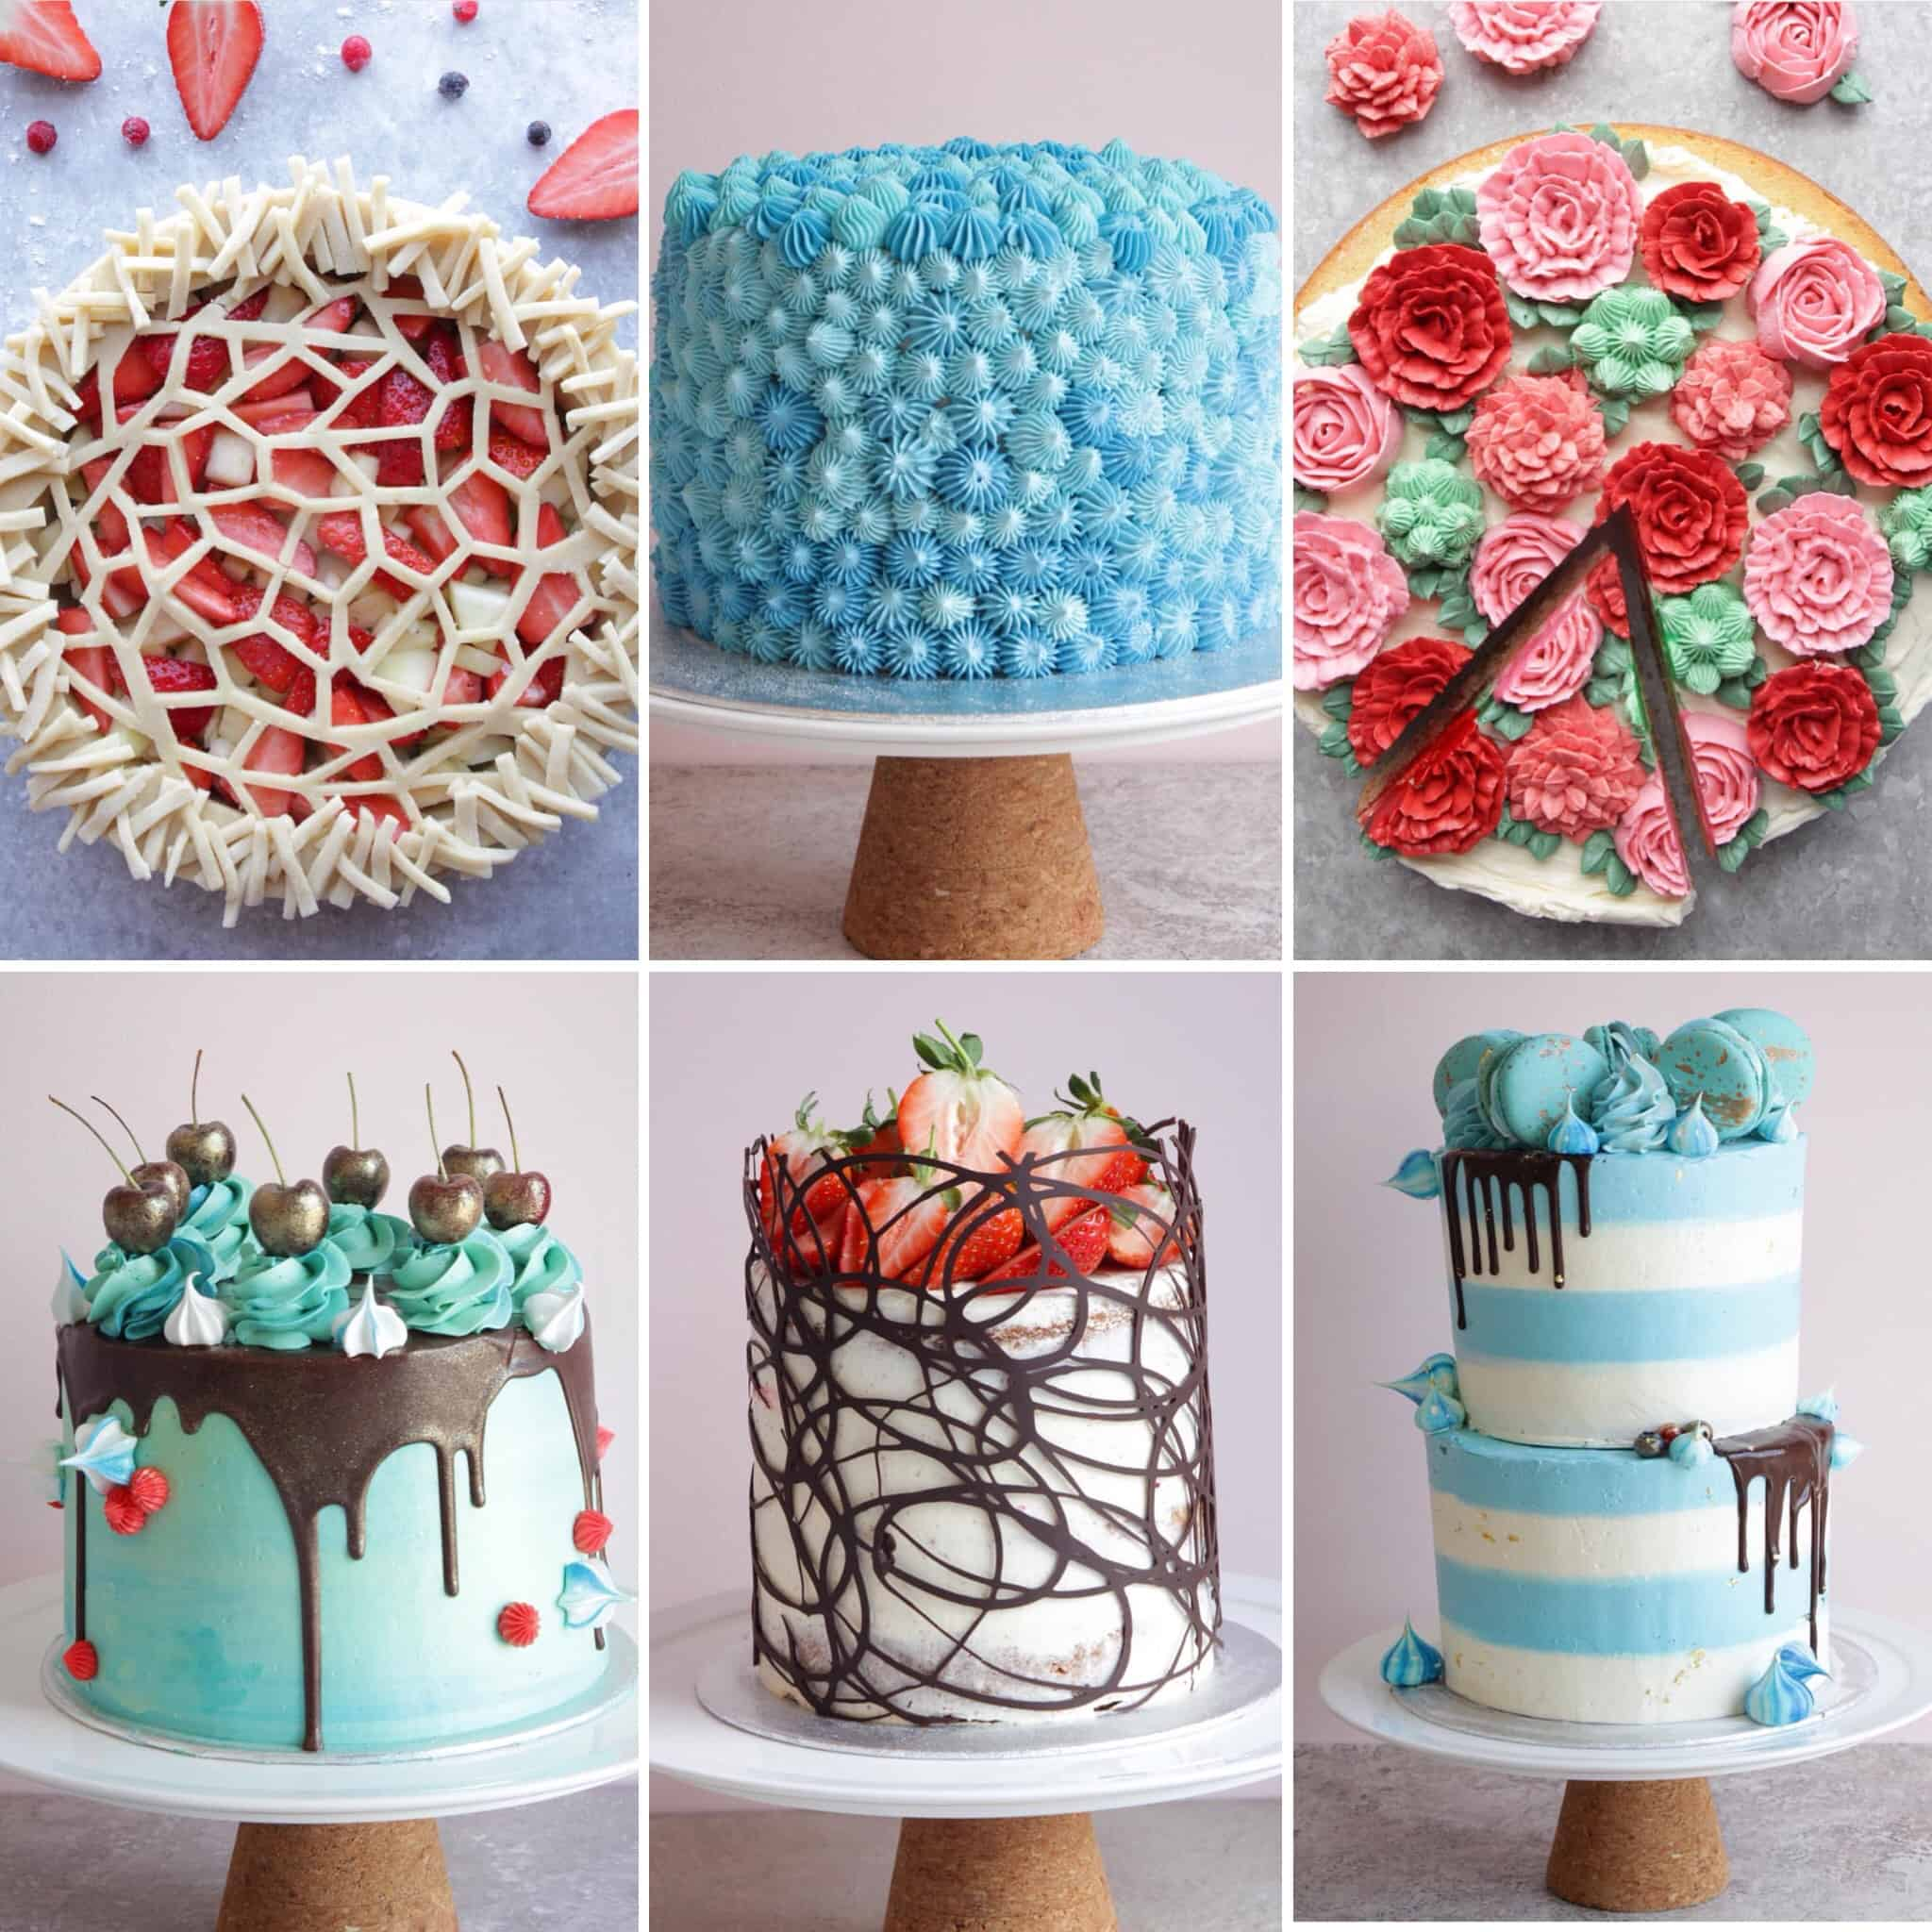 Gorgeous Cakes by YouTuber Home Baker Matt Adlard, The Topless Baker of Swoon Talent